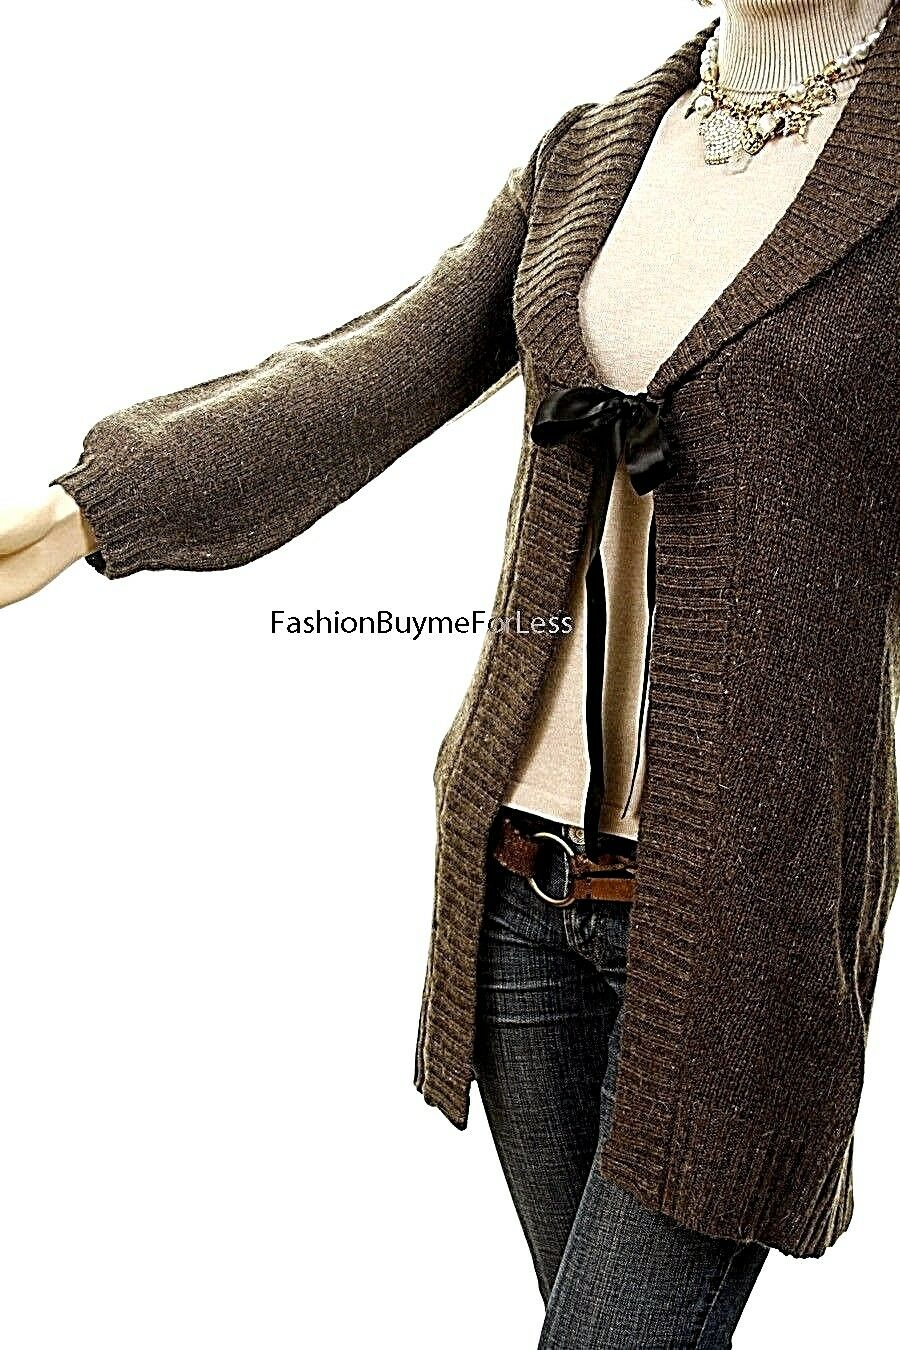 Haute BOHO Gypsy Brown Tie Collar Collar Collar Wool Cable Knit Sweater Cardigan Coat S M L 0ba76b